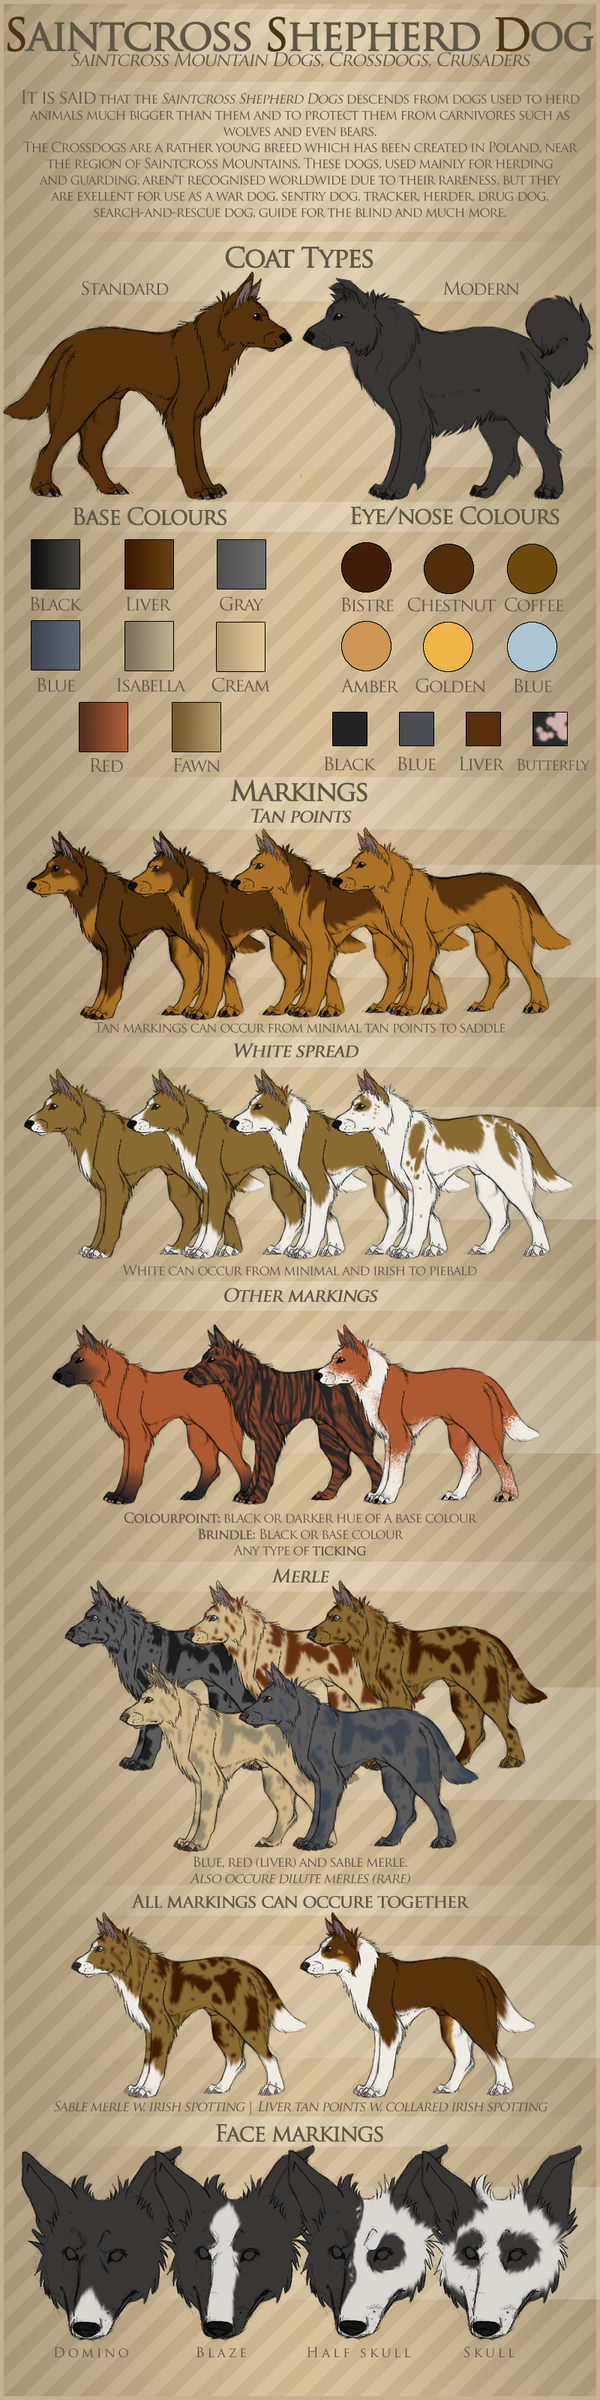 Saintcross Shepherd Dog breedsheet by samuraj-SZADZIK